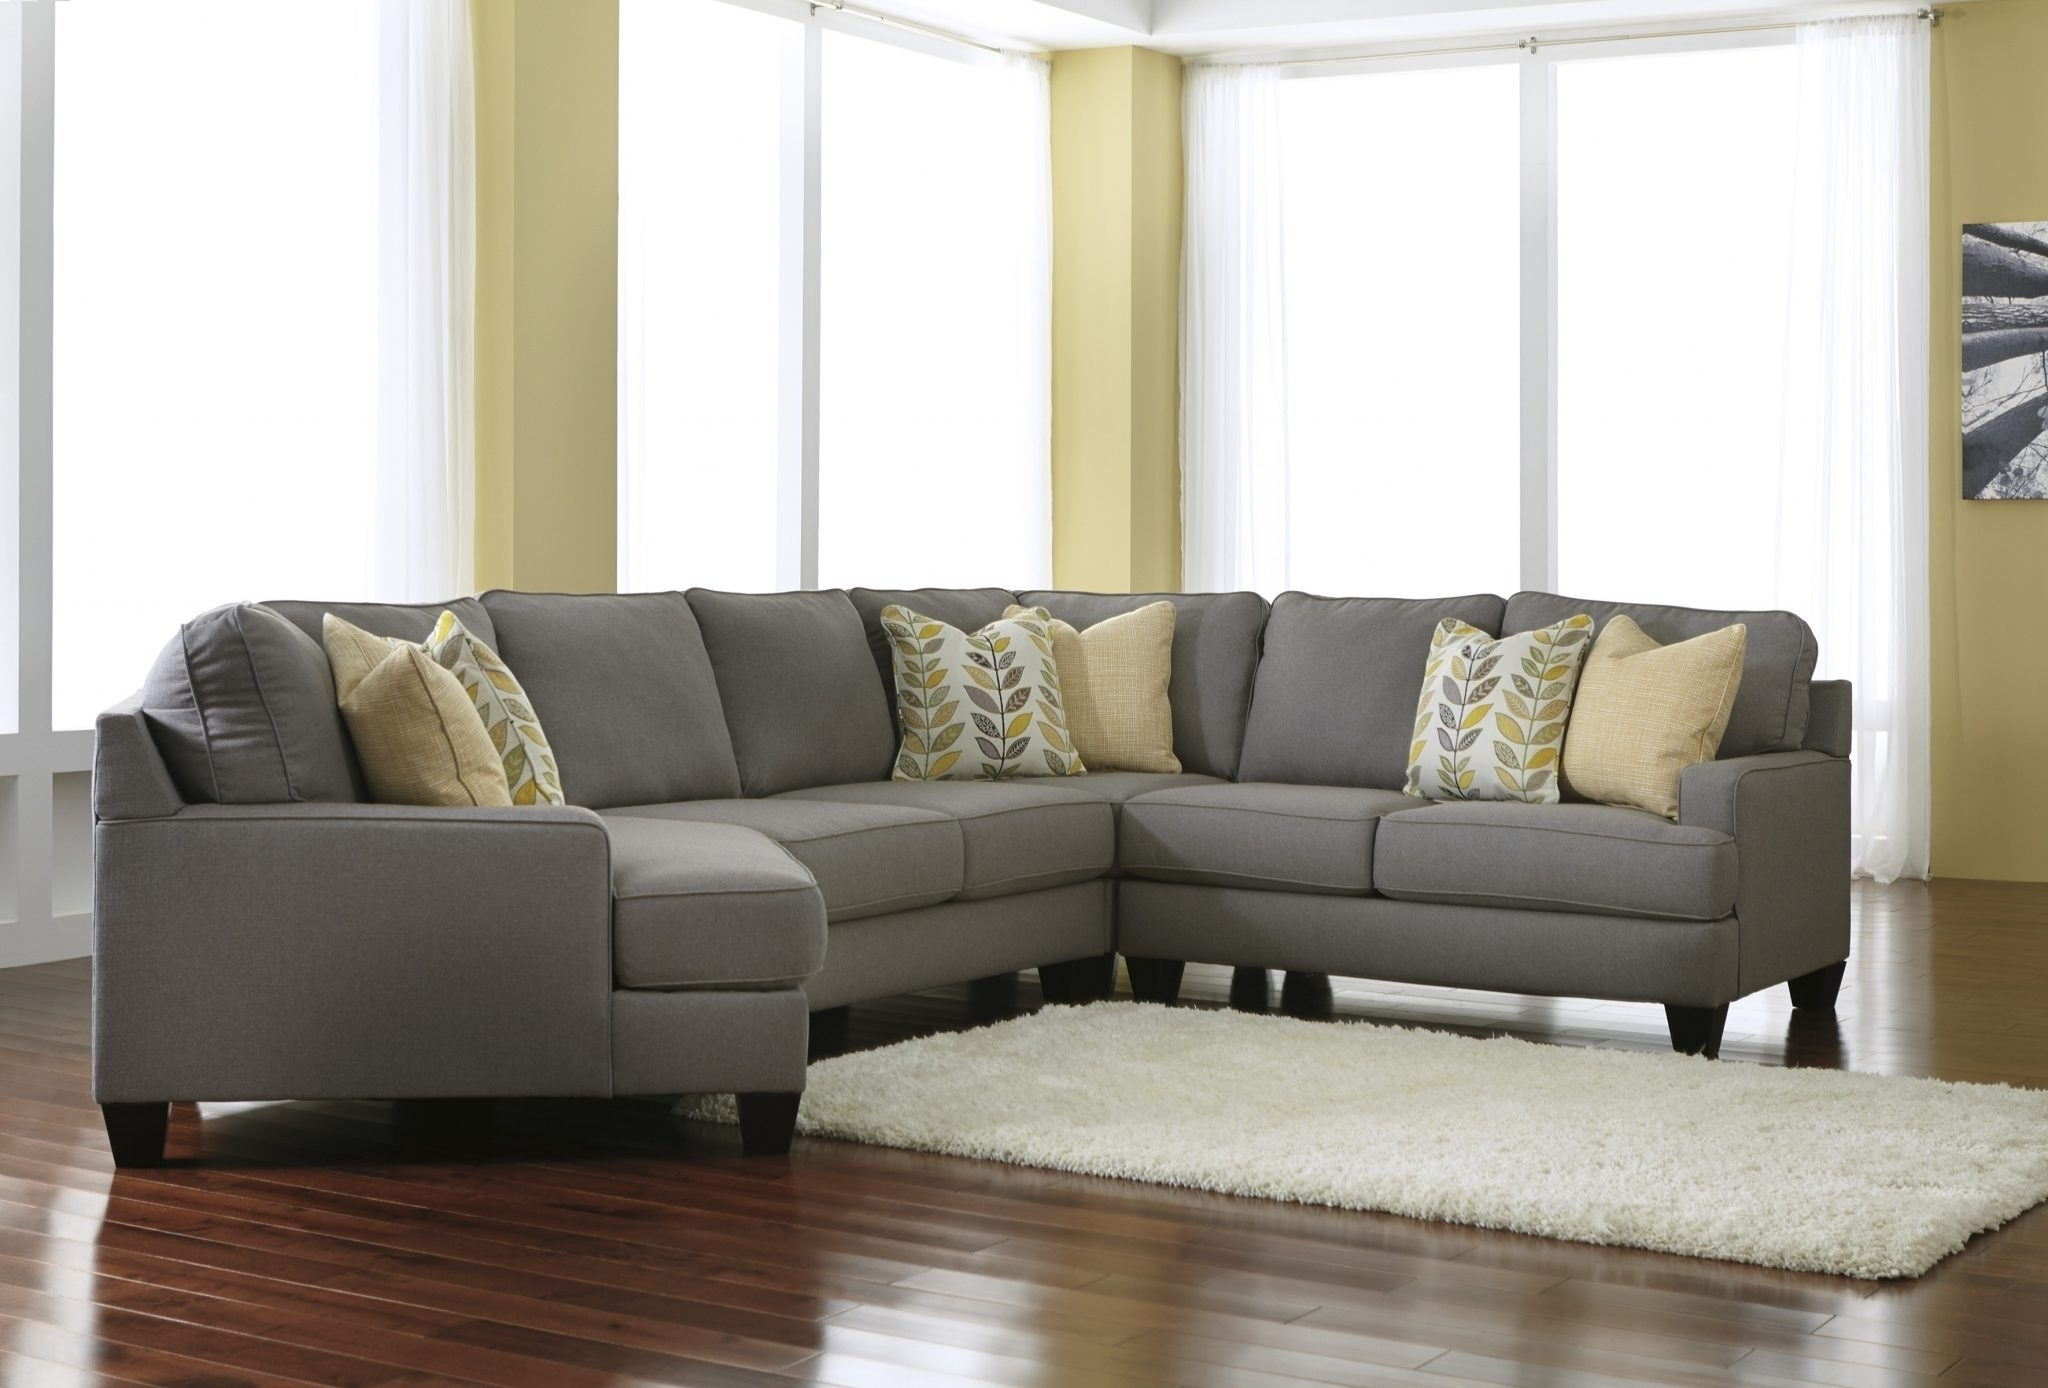 20 Ideas Of Ventura County Sectional Sofas In Ventura County Sectional Sofas (Image 1 of 10)